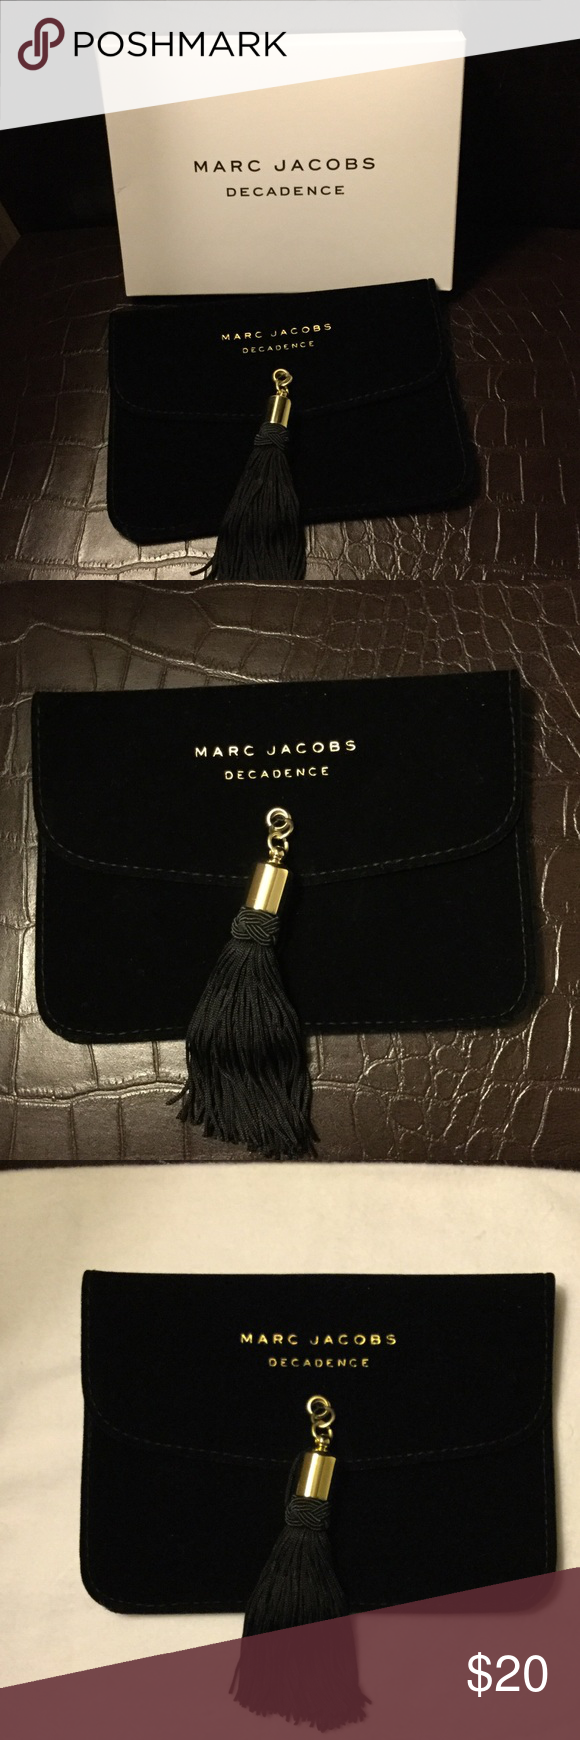 Marc Jacobs Decadence Make-Up Pouch | Marc jacobs, Black tassels ...